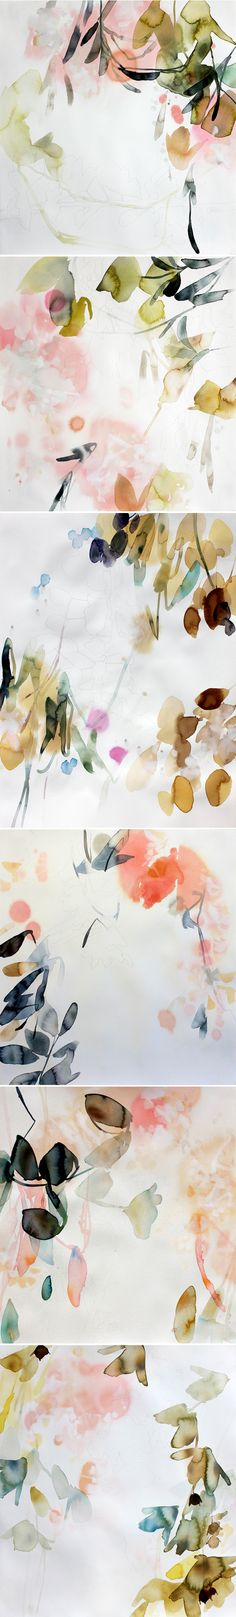 Drawing On Creativity elise morris - Dreamy. Watercolor, and faint traces of pencil drawings on paper. This is the elegant work of American artist Elise Morris. gorgeous colors, perfect compositions, and of course, botanicals … because Art Aquarelle, Art Watercolor, Watercolor Flowers, Art And Illustration, Illustrations, Magazin Design, Motif Floral, Botanical Art, Painting Inspiration